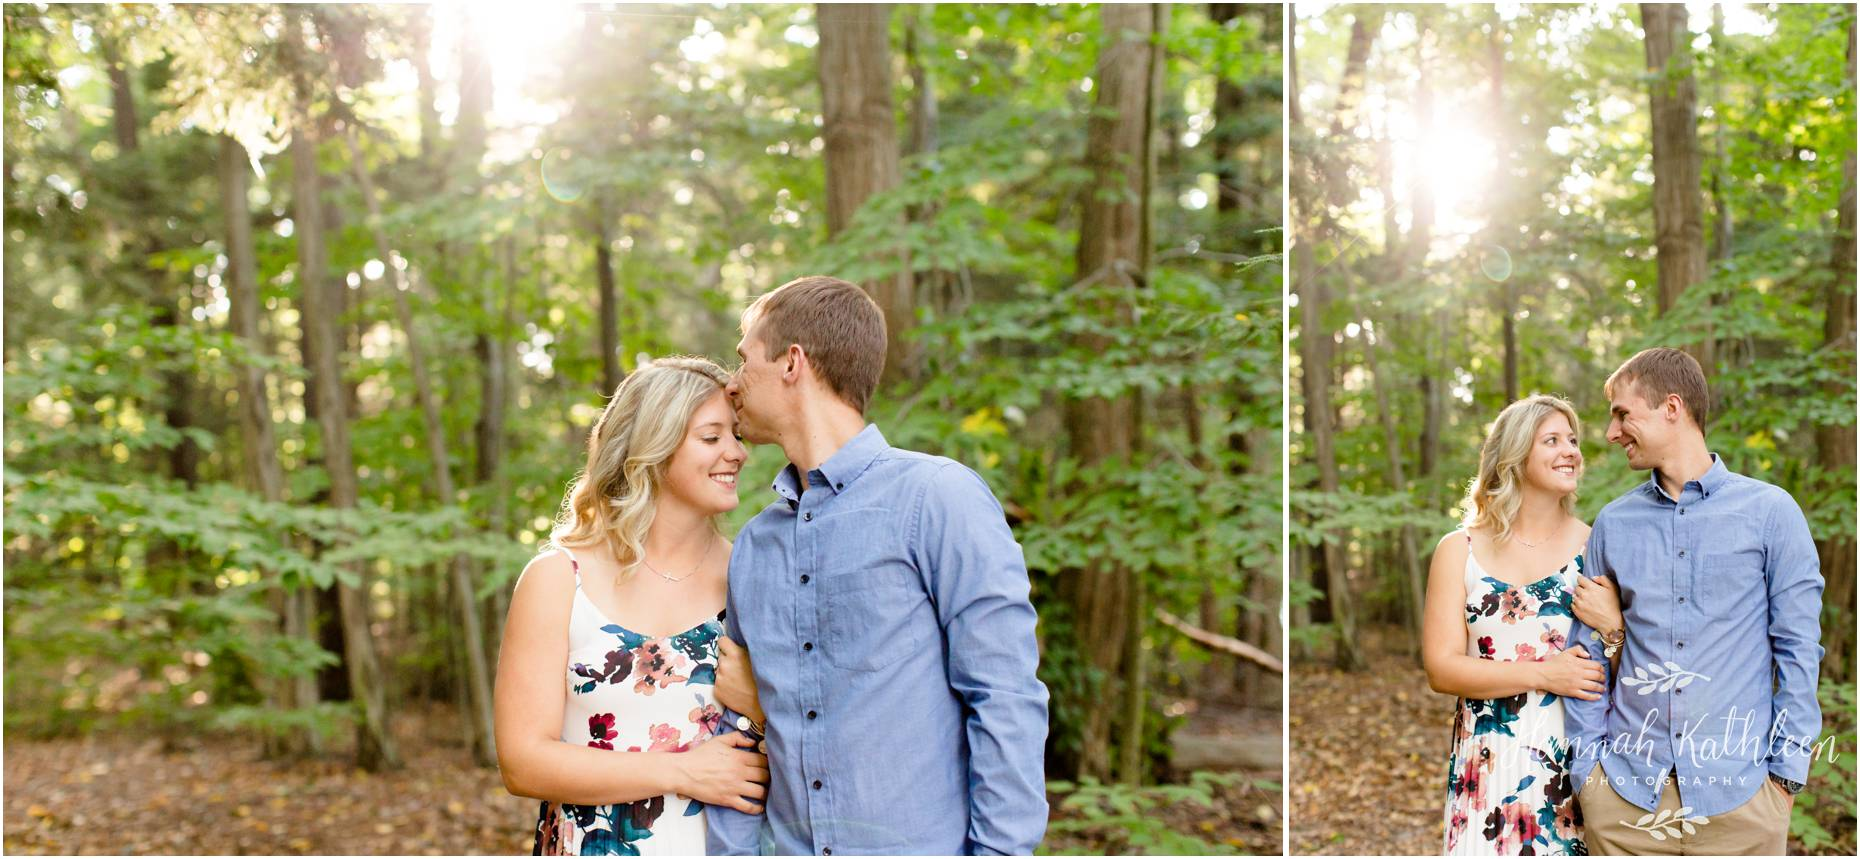 Aj_Brittany_Buffalo_Woods_Engagement_Session